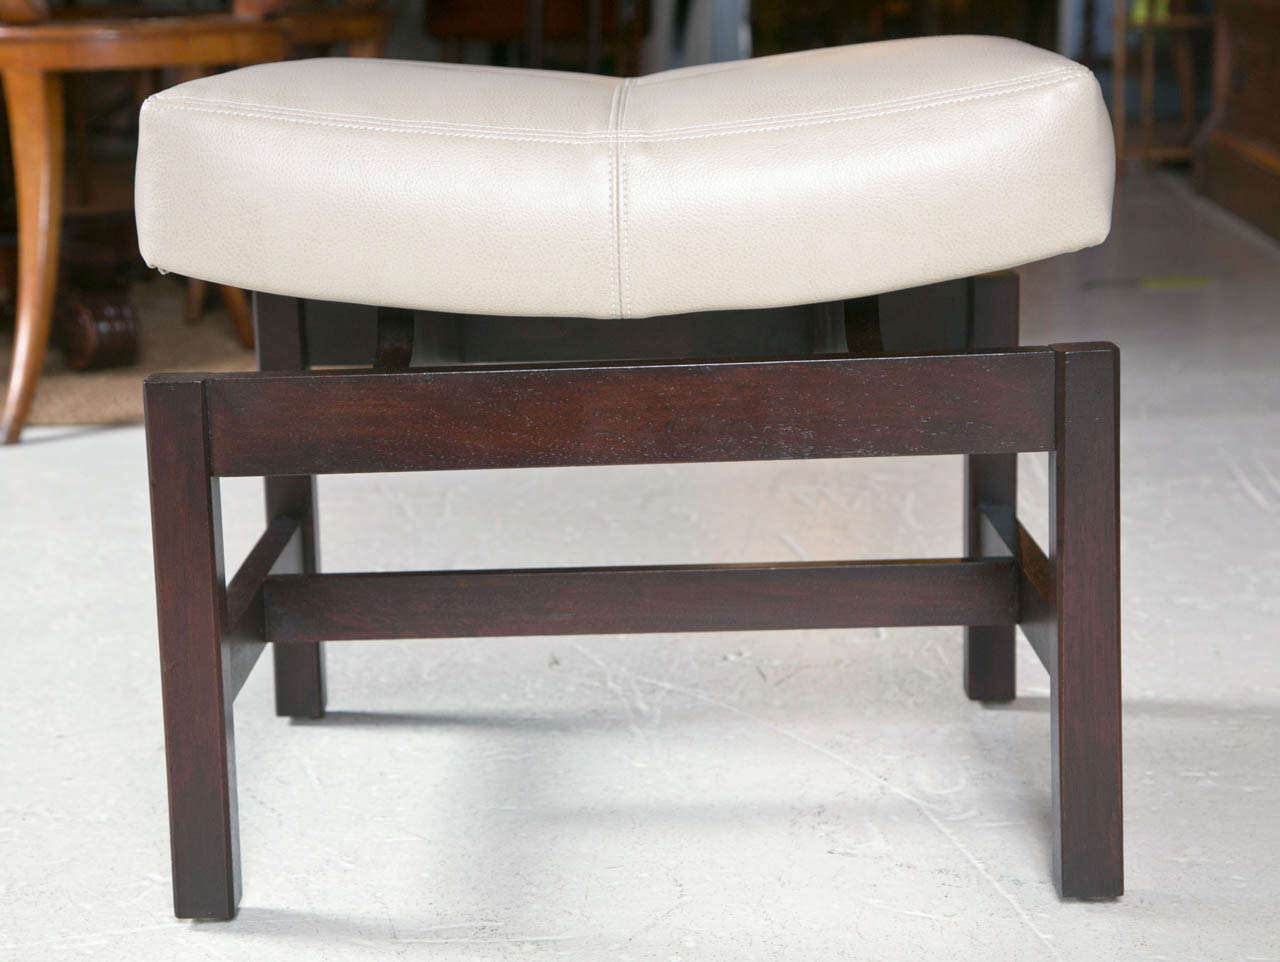 #9C602F Jens Risom Bench With Floating Saddle Seat At 1stdibs with 1280x962 px of Highly Rated Saddle Bench Stool 9621280 picture/photo @ avoidforclosure.info